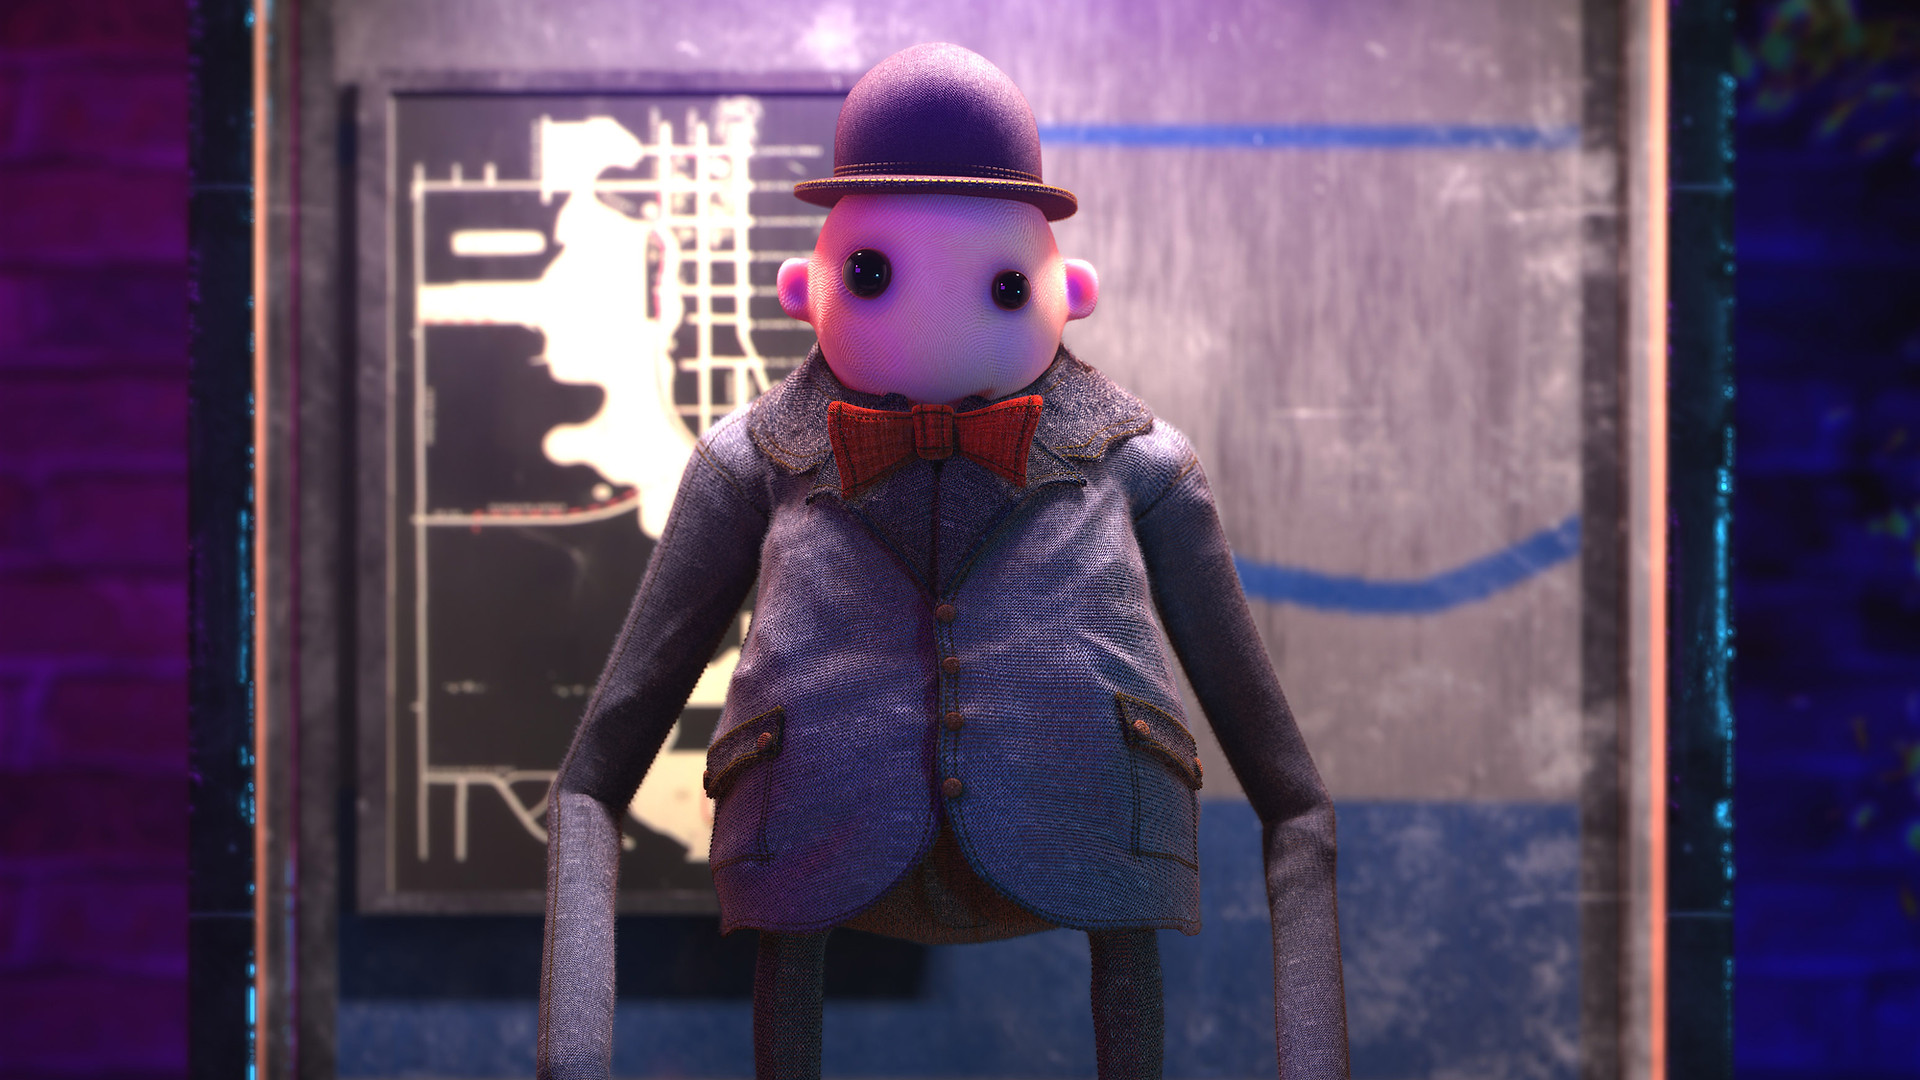 3d-Character-at-bus-stop.jpg